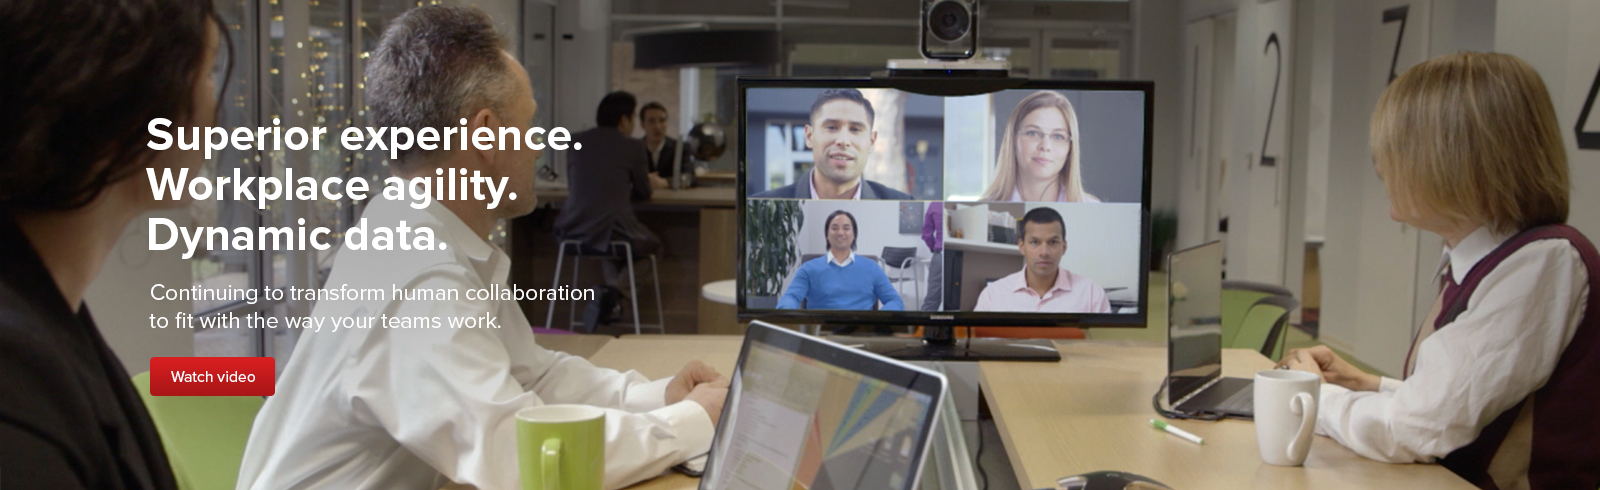 Superior experience. Workplace agility. Dynamic data